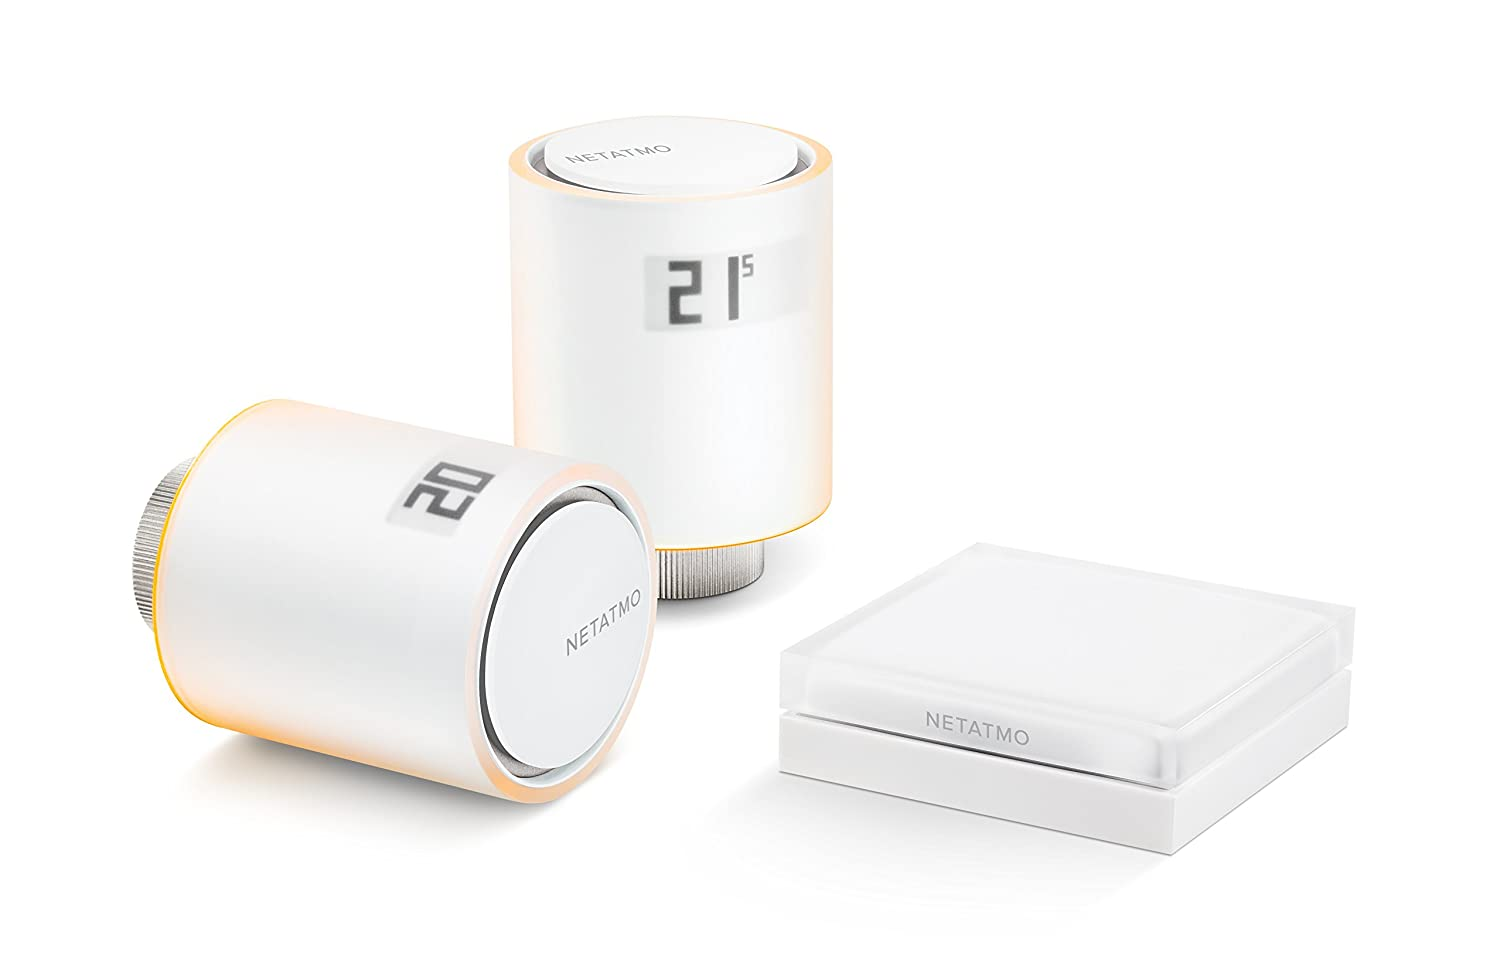 NETATMO nvp de IT Kit de base inteligente válvulas para radiadores, multicolor: Amazon.es: Bricolaje y herramientas